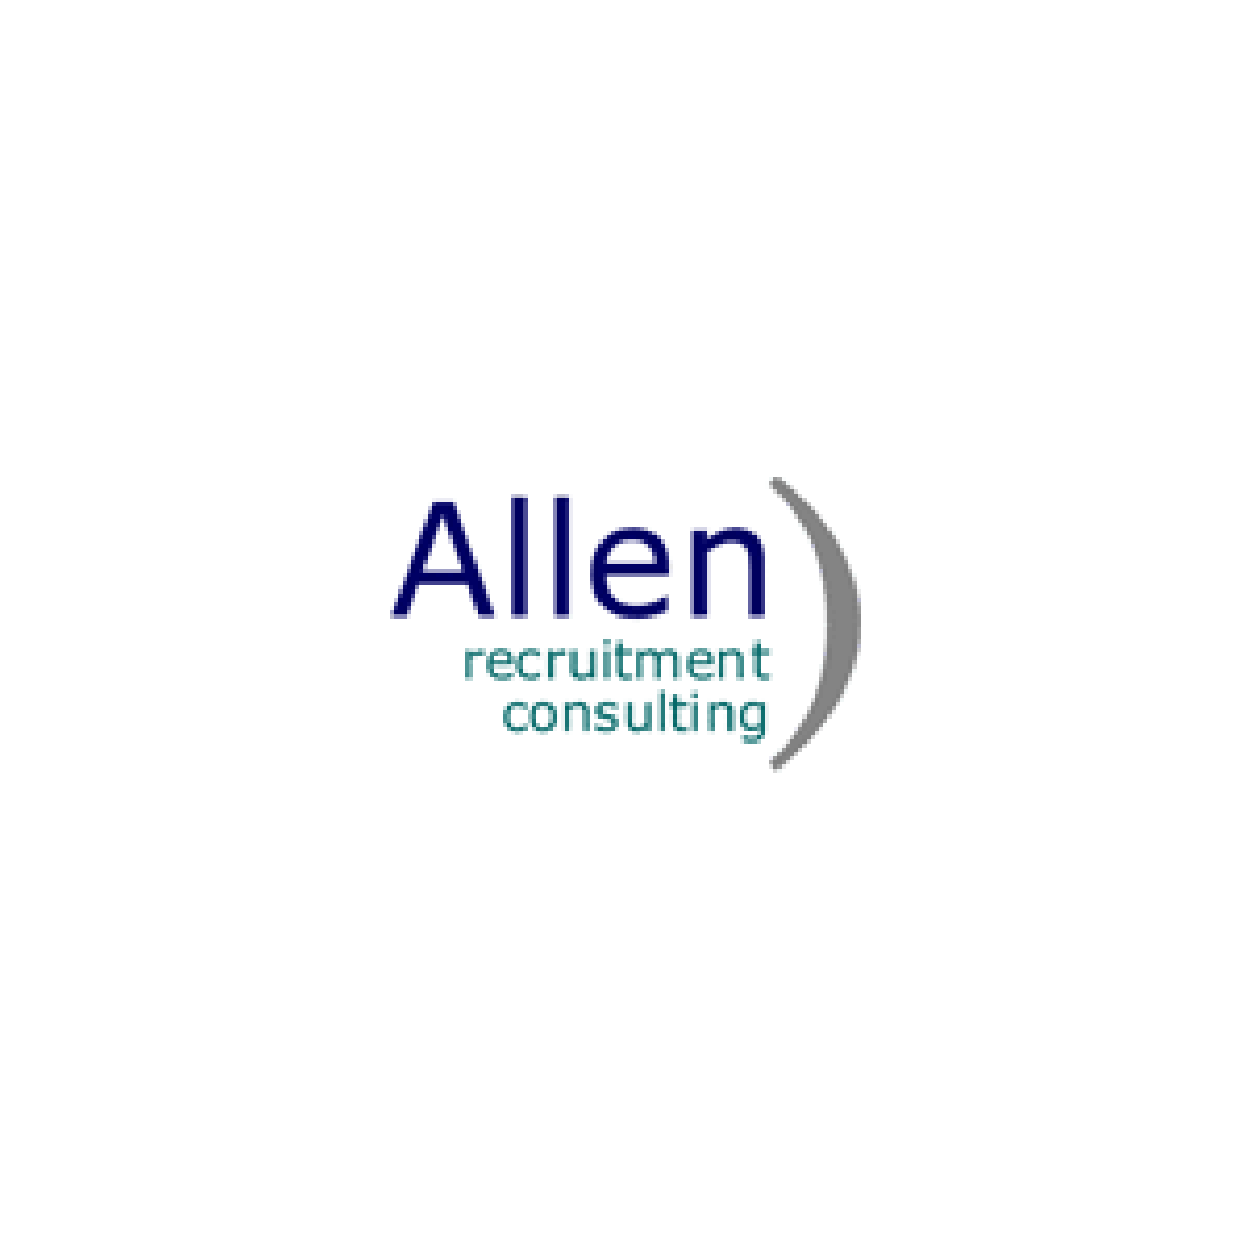 allen-recruitment